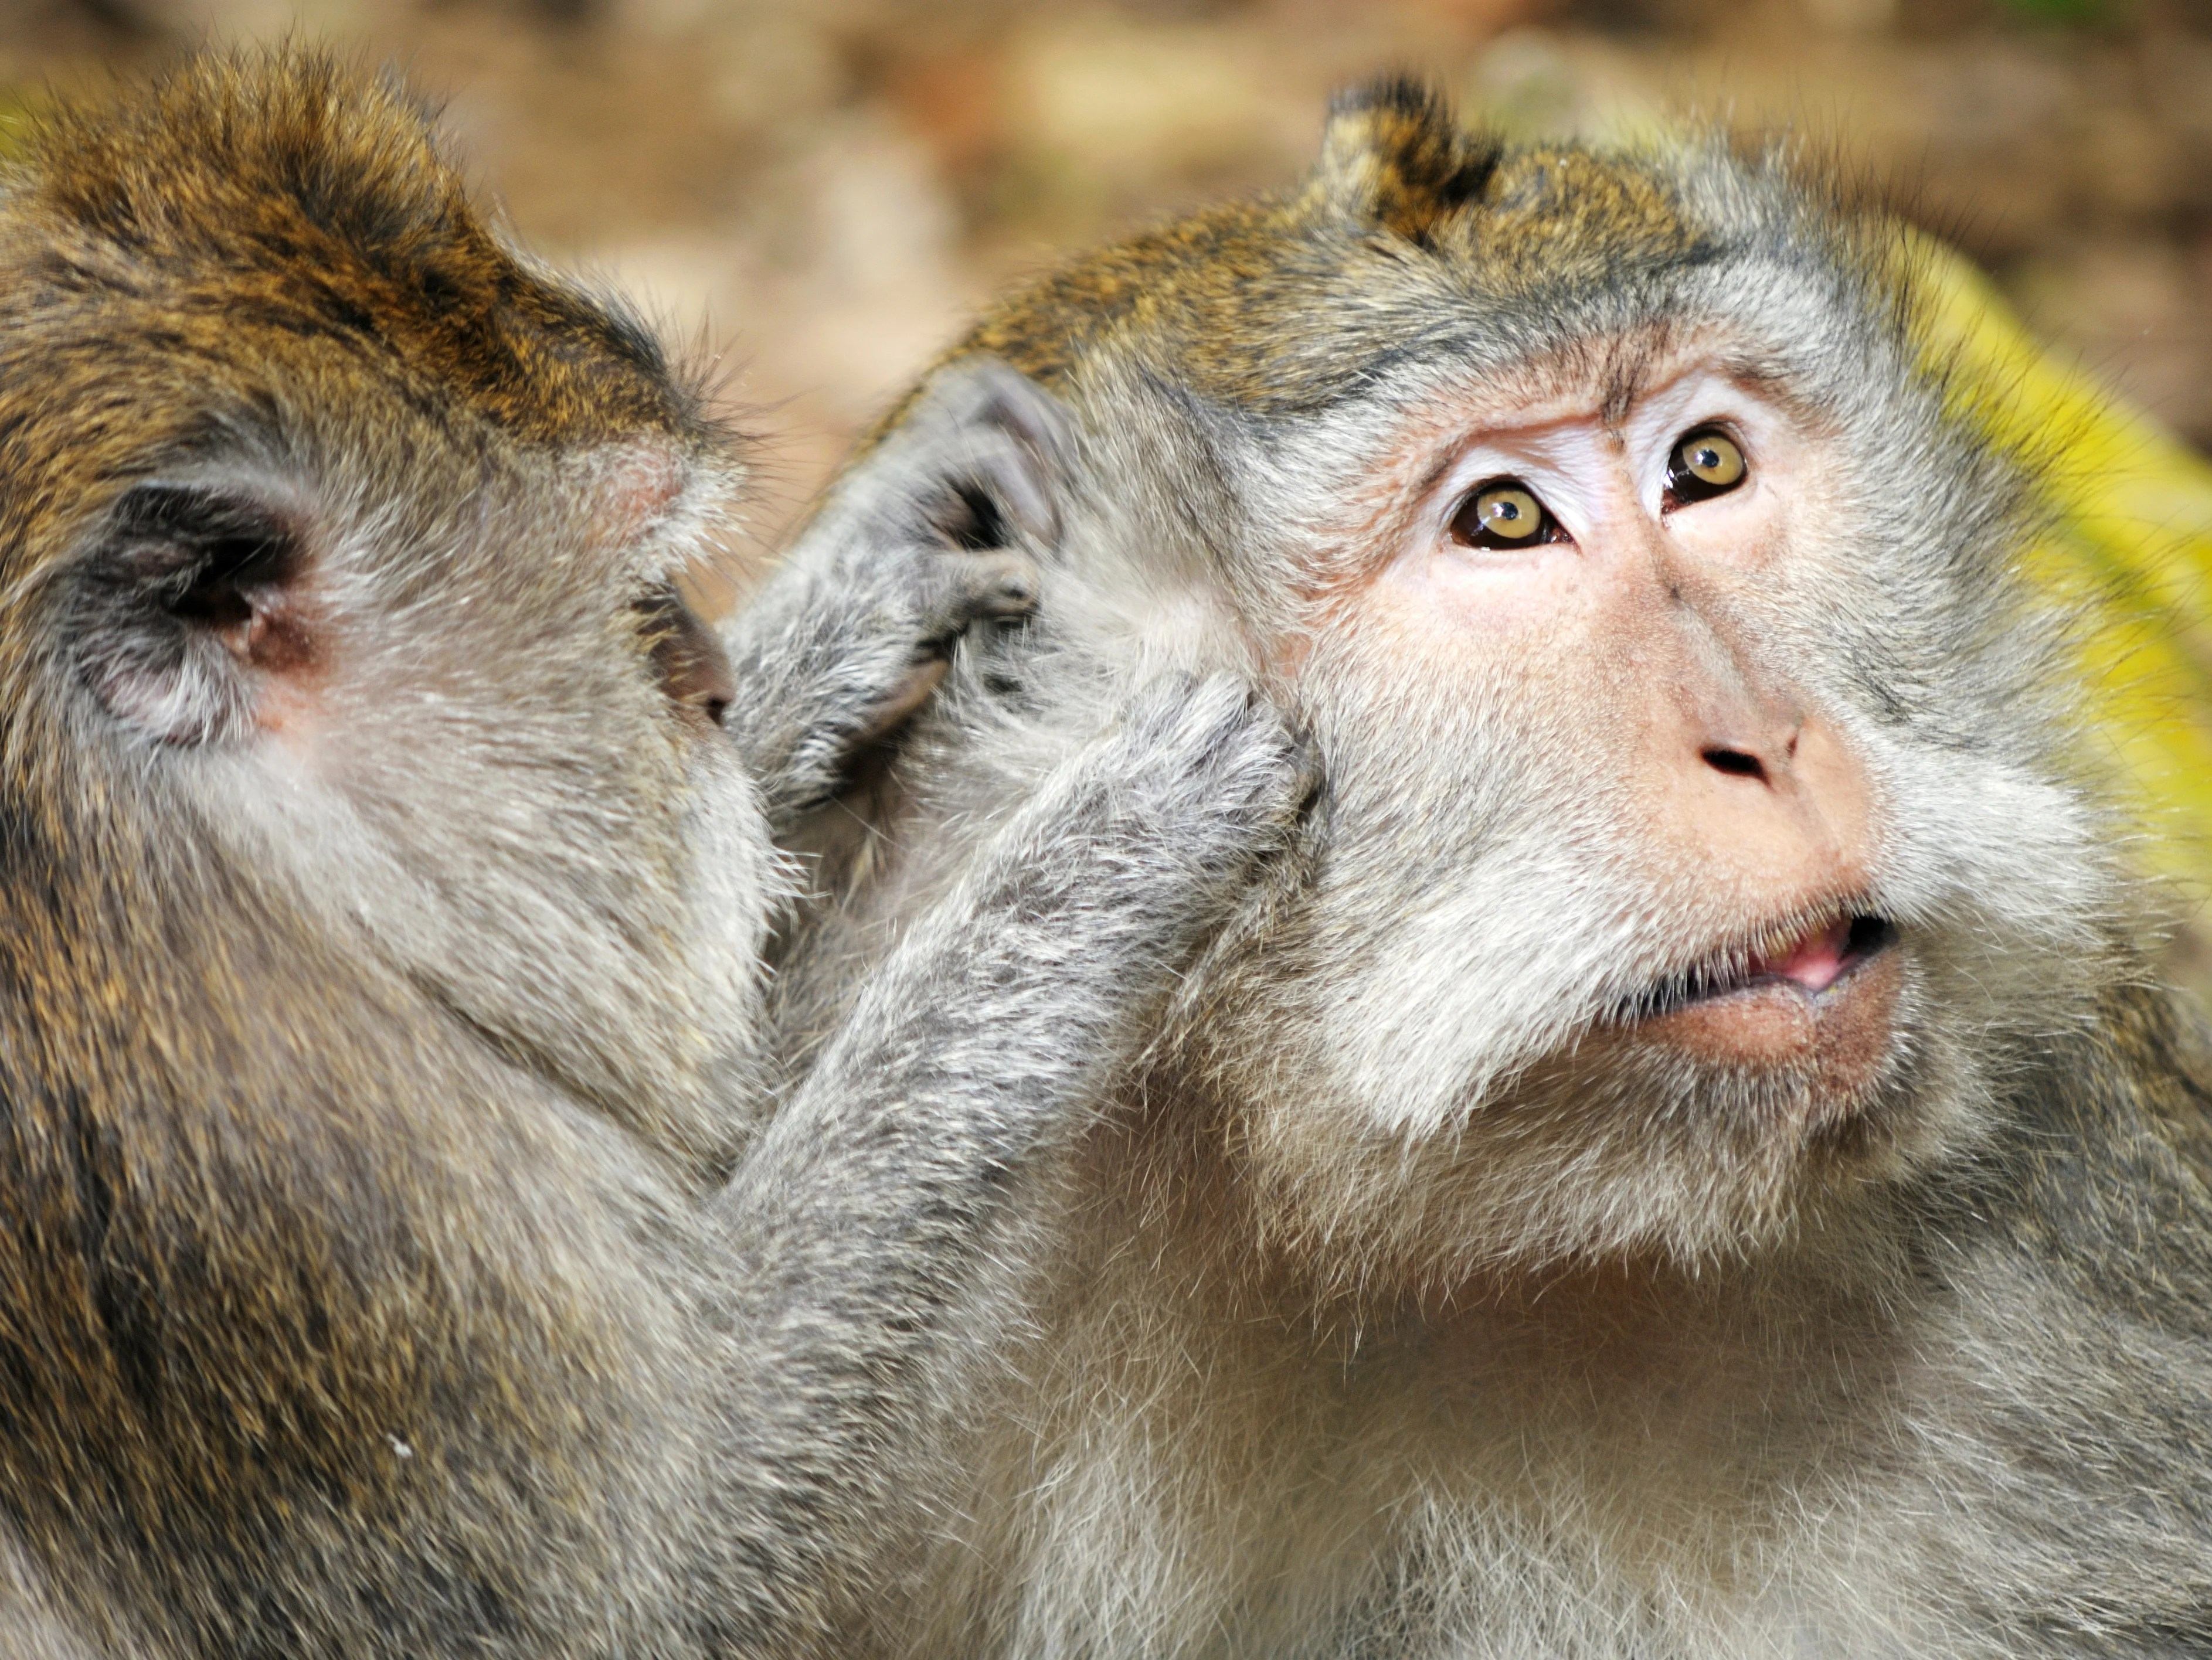 UK 'complicit in cruel trade in wild monkeys' for lab tests as government refuses to match EU ban